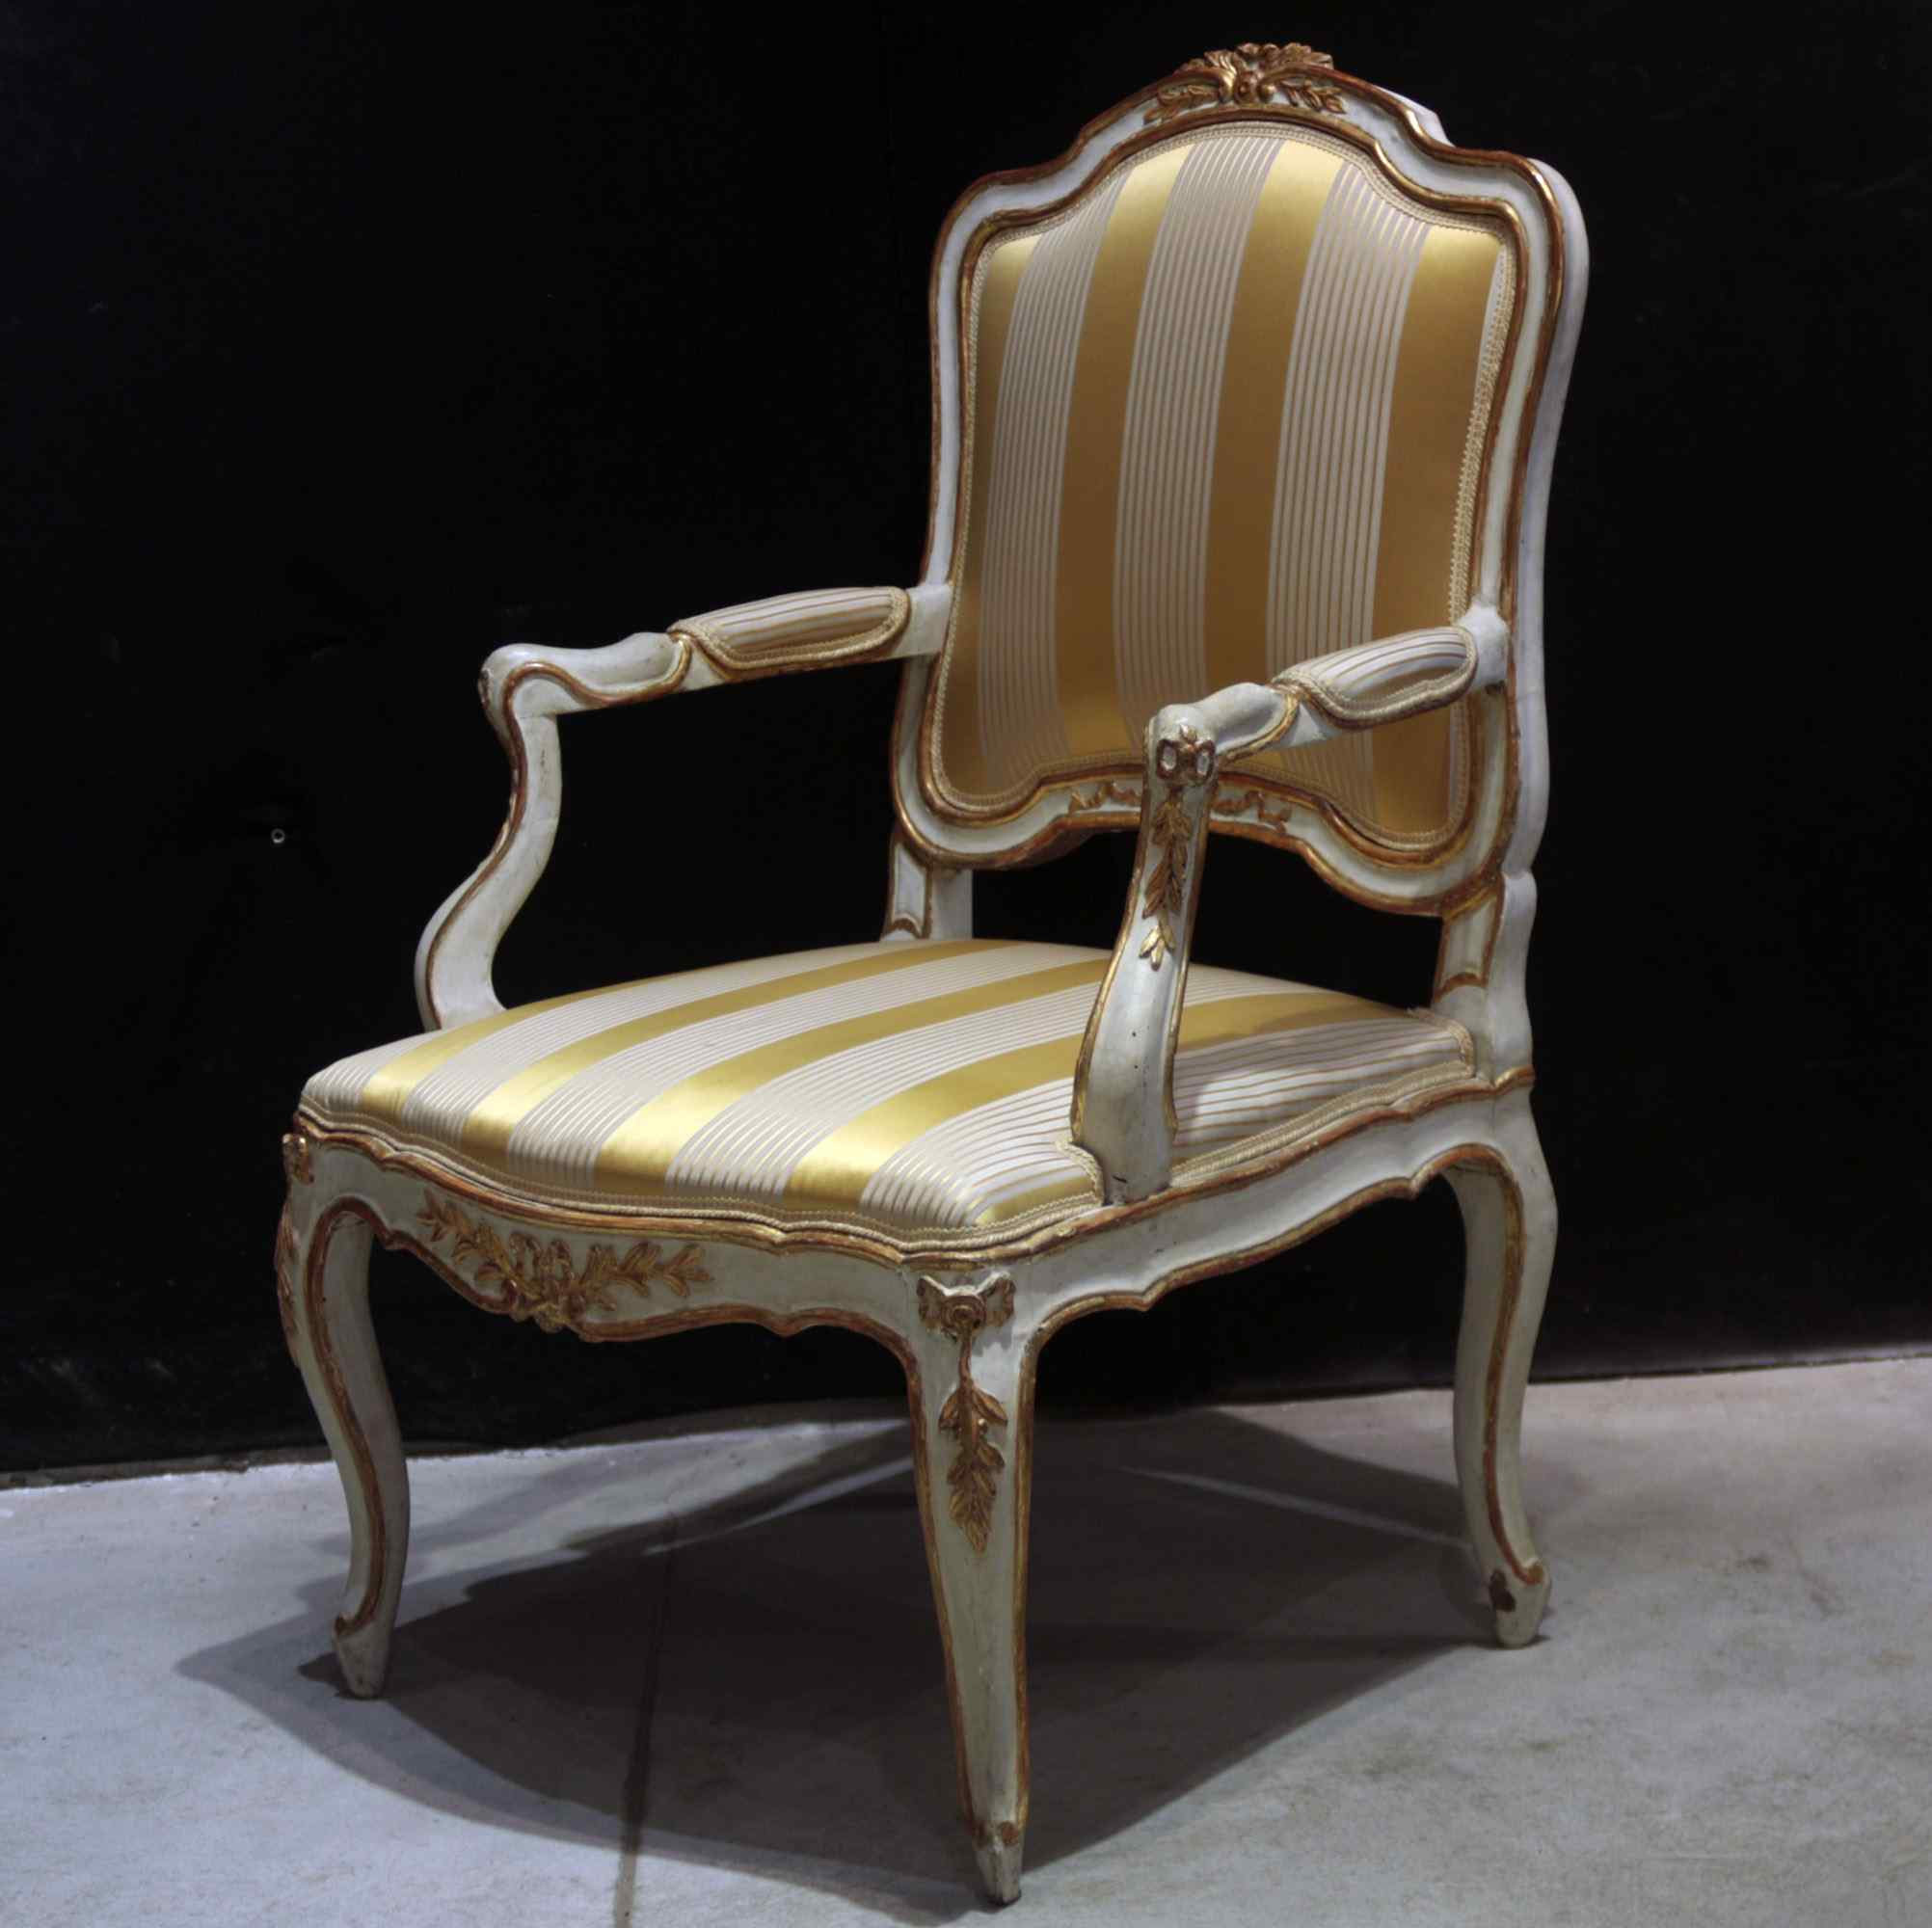 Lacquered and gilded armchair, Marche, Louis XV